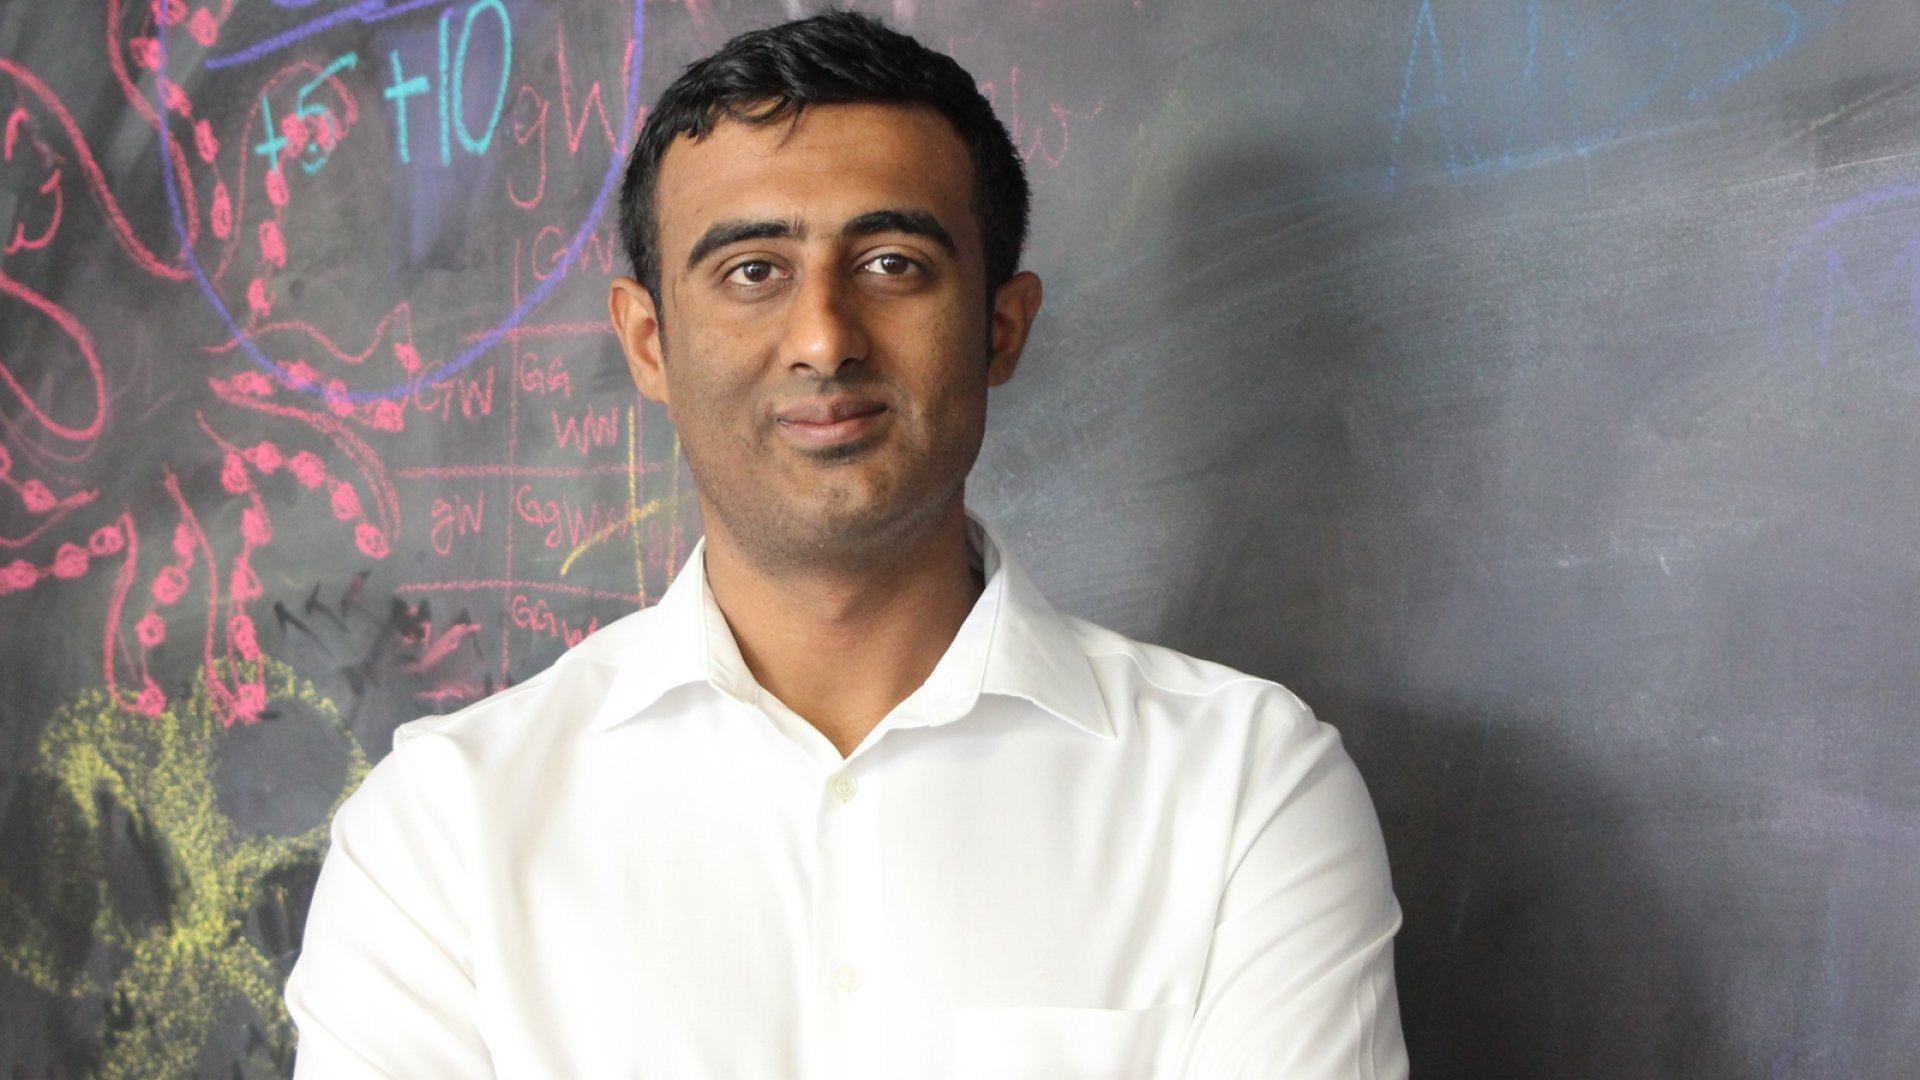 As soon as the AngelPad accelerator accepted Zain Jaffer's company, Vungle, into the last spot in its fall 2011 class, Jaffer hopped on a plane from London to San Francisco. He hasn't looked back since.